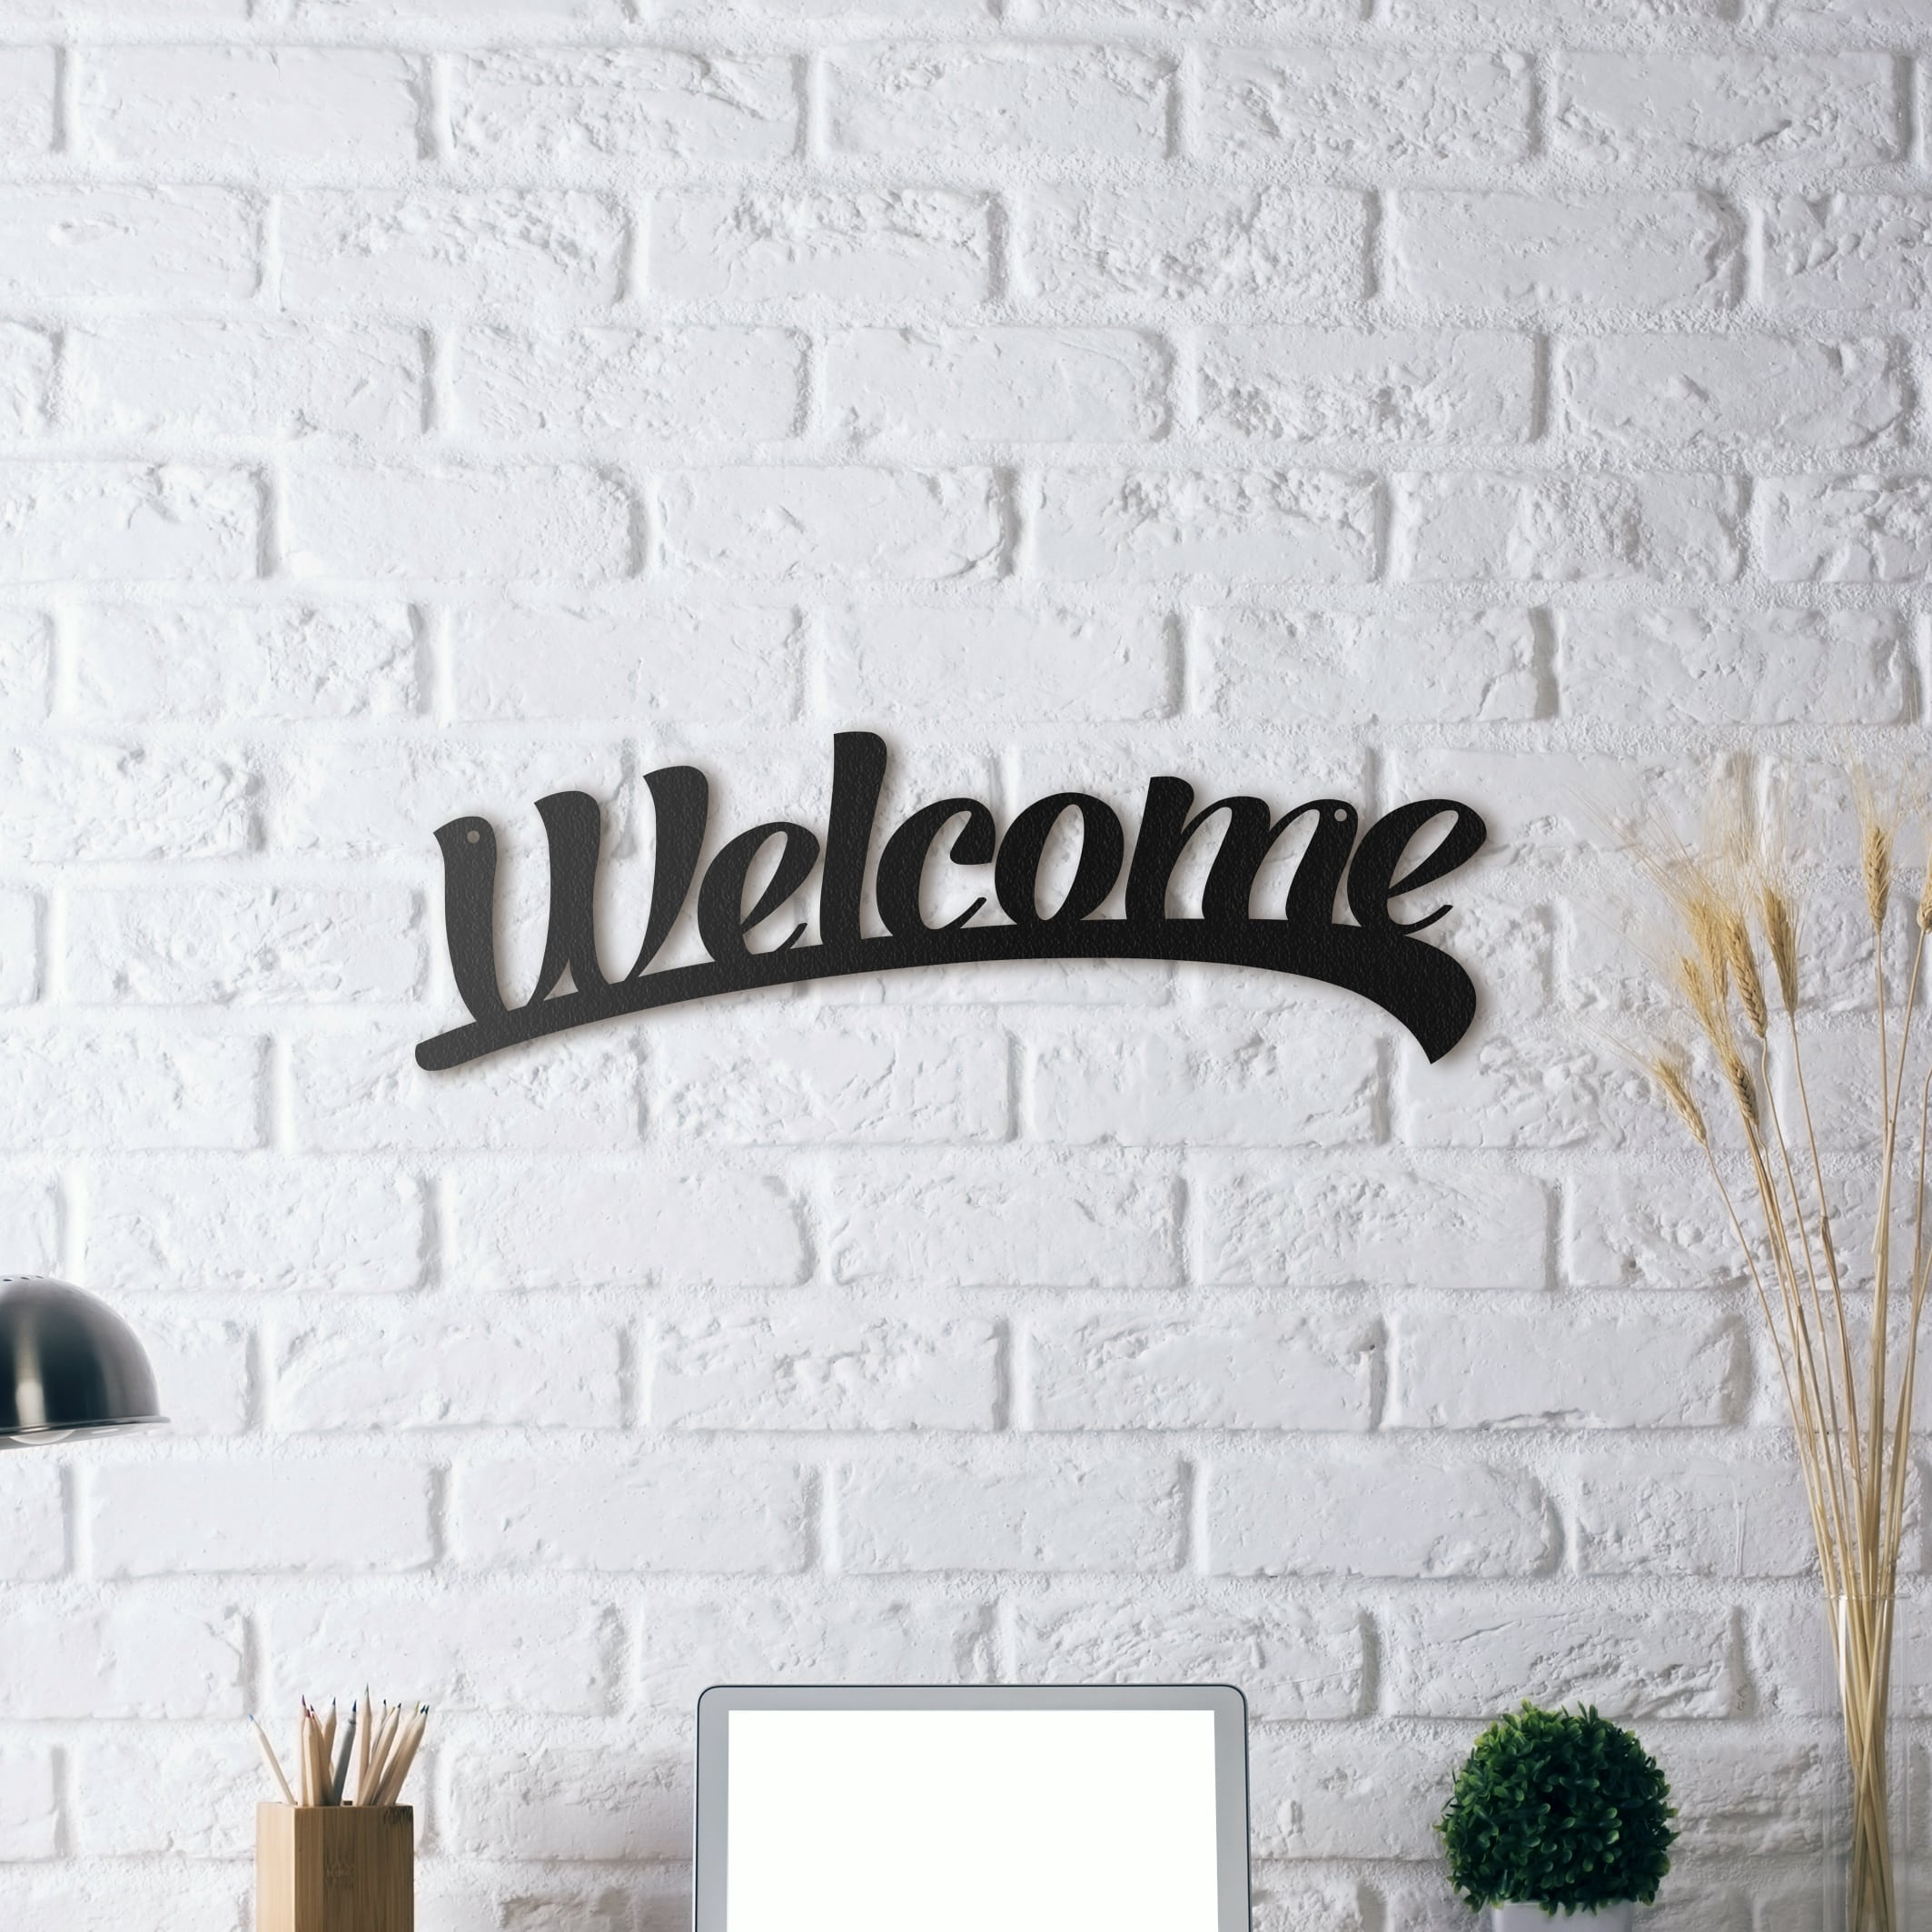 Metal design wall decoration to make a great welcome to your friend